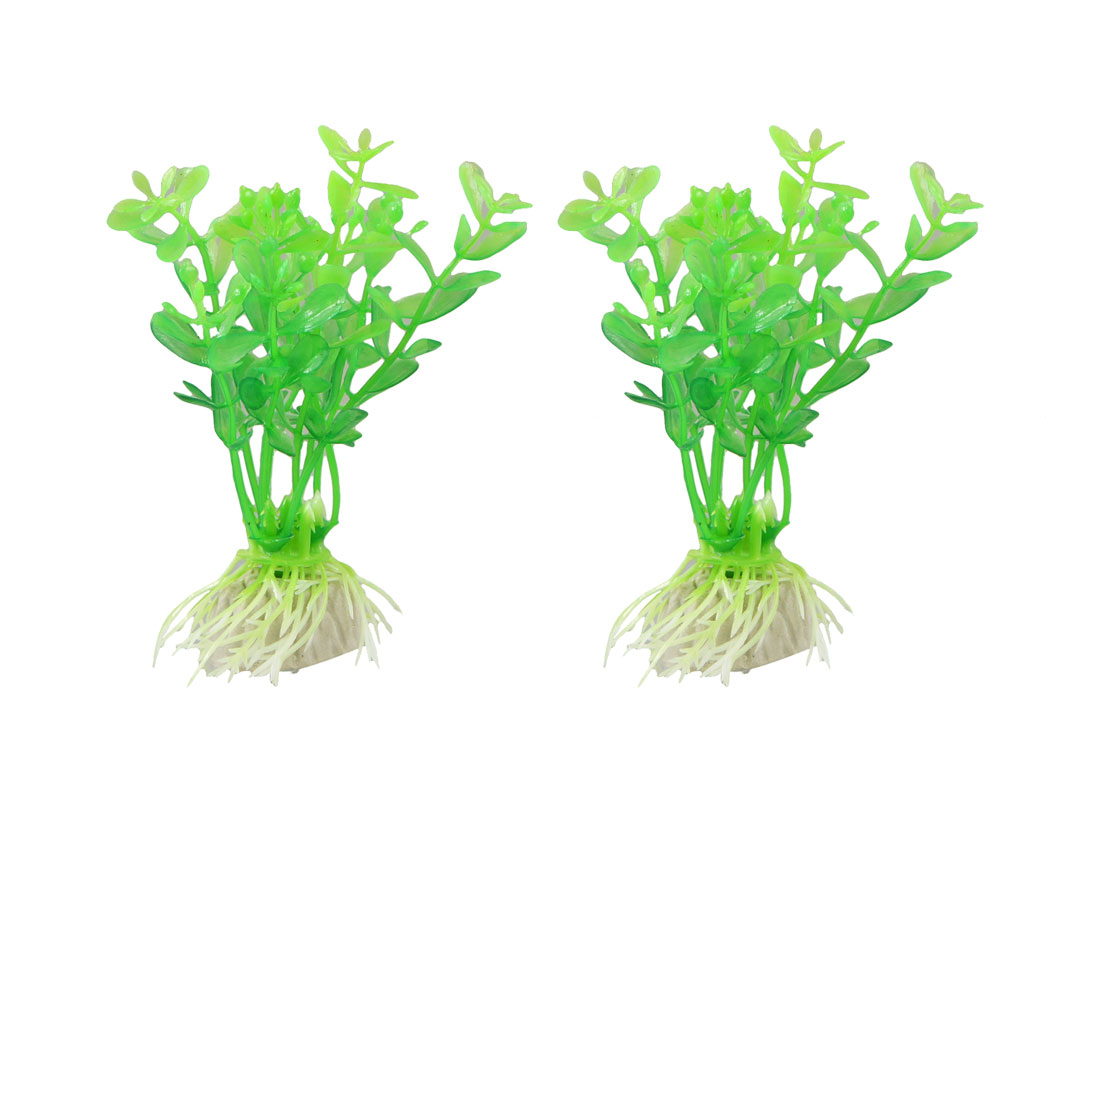 "3.7"" High Green Manmade Water Plant Grass 2 Pcs for Fish Tank Aquarium"